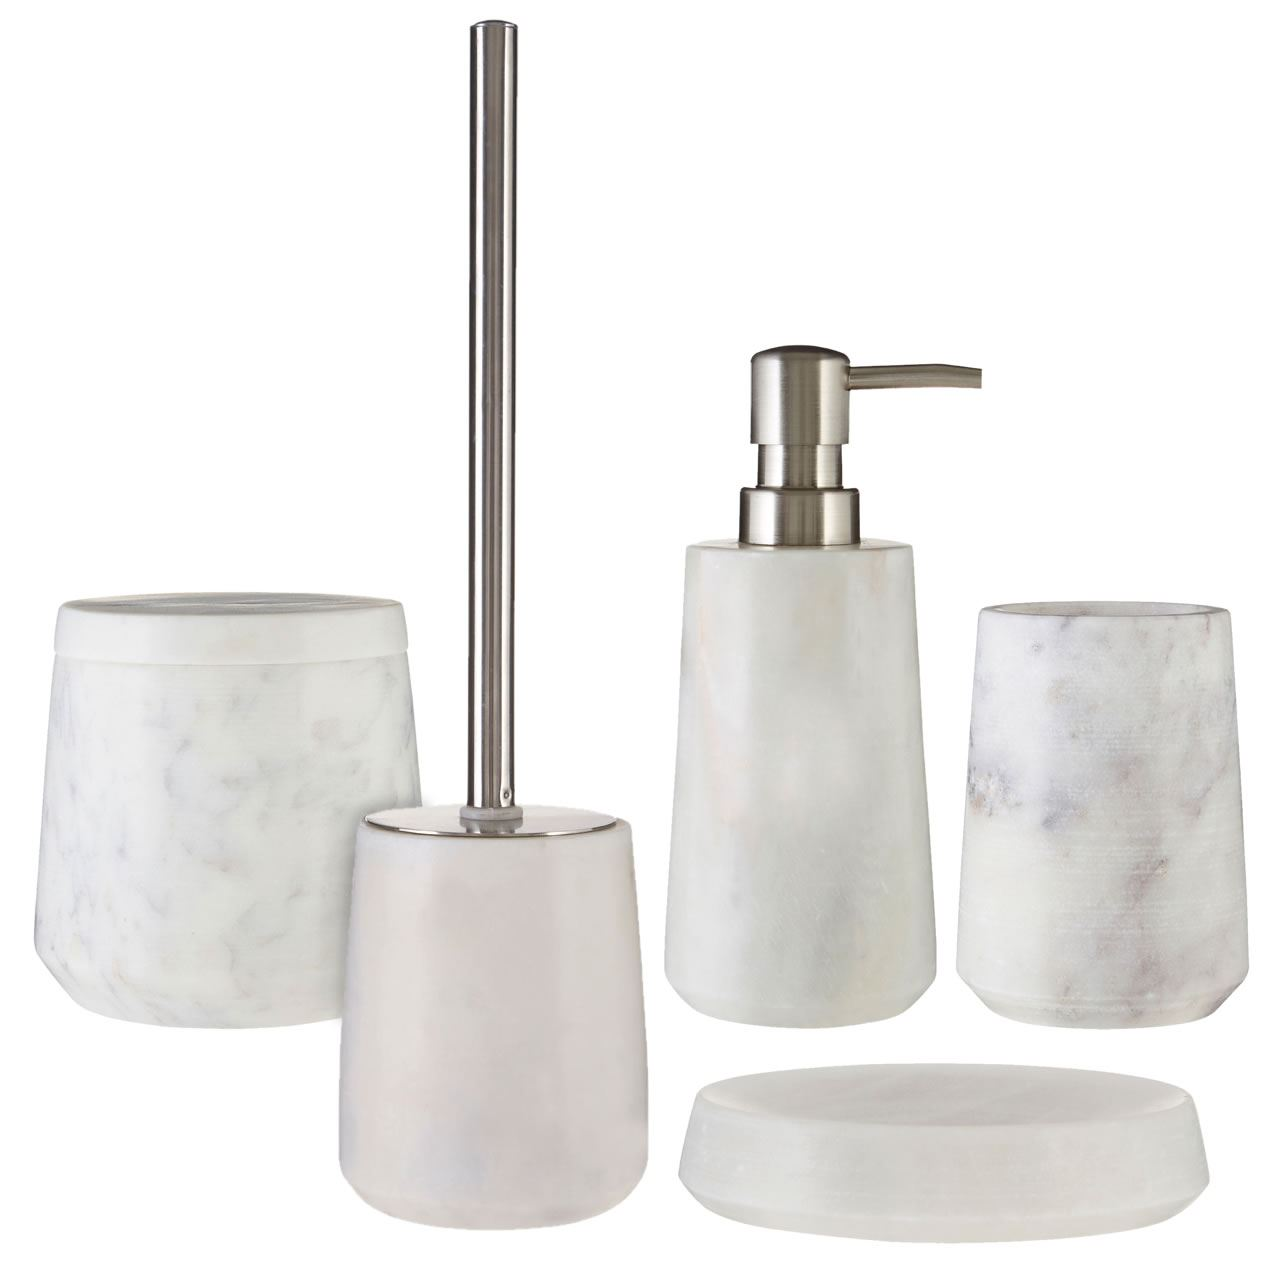 5 piece marble bathroom accessories set soap dish tumbler toilet brush ebay - Bathroom soap dish sets ...